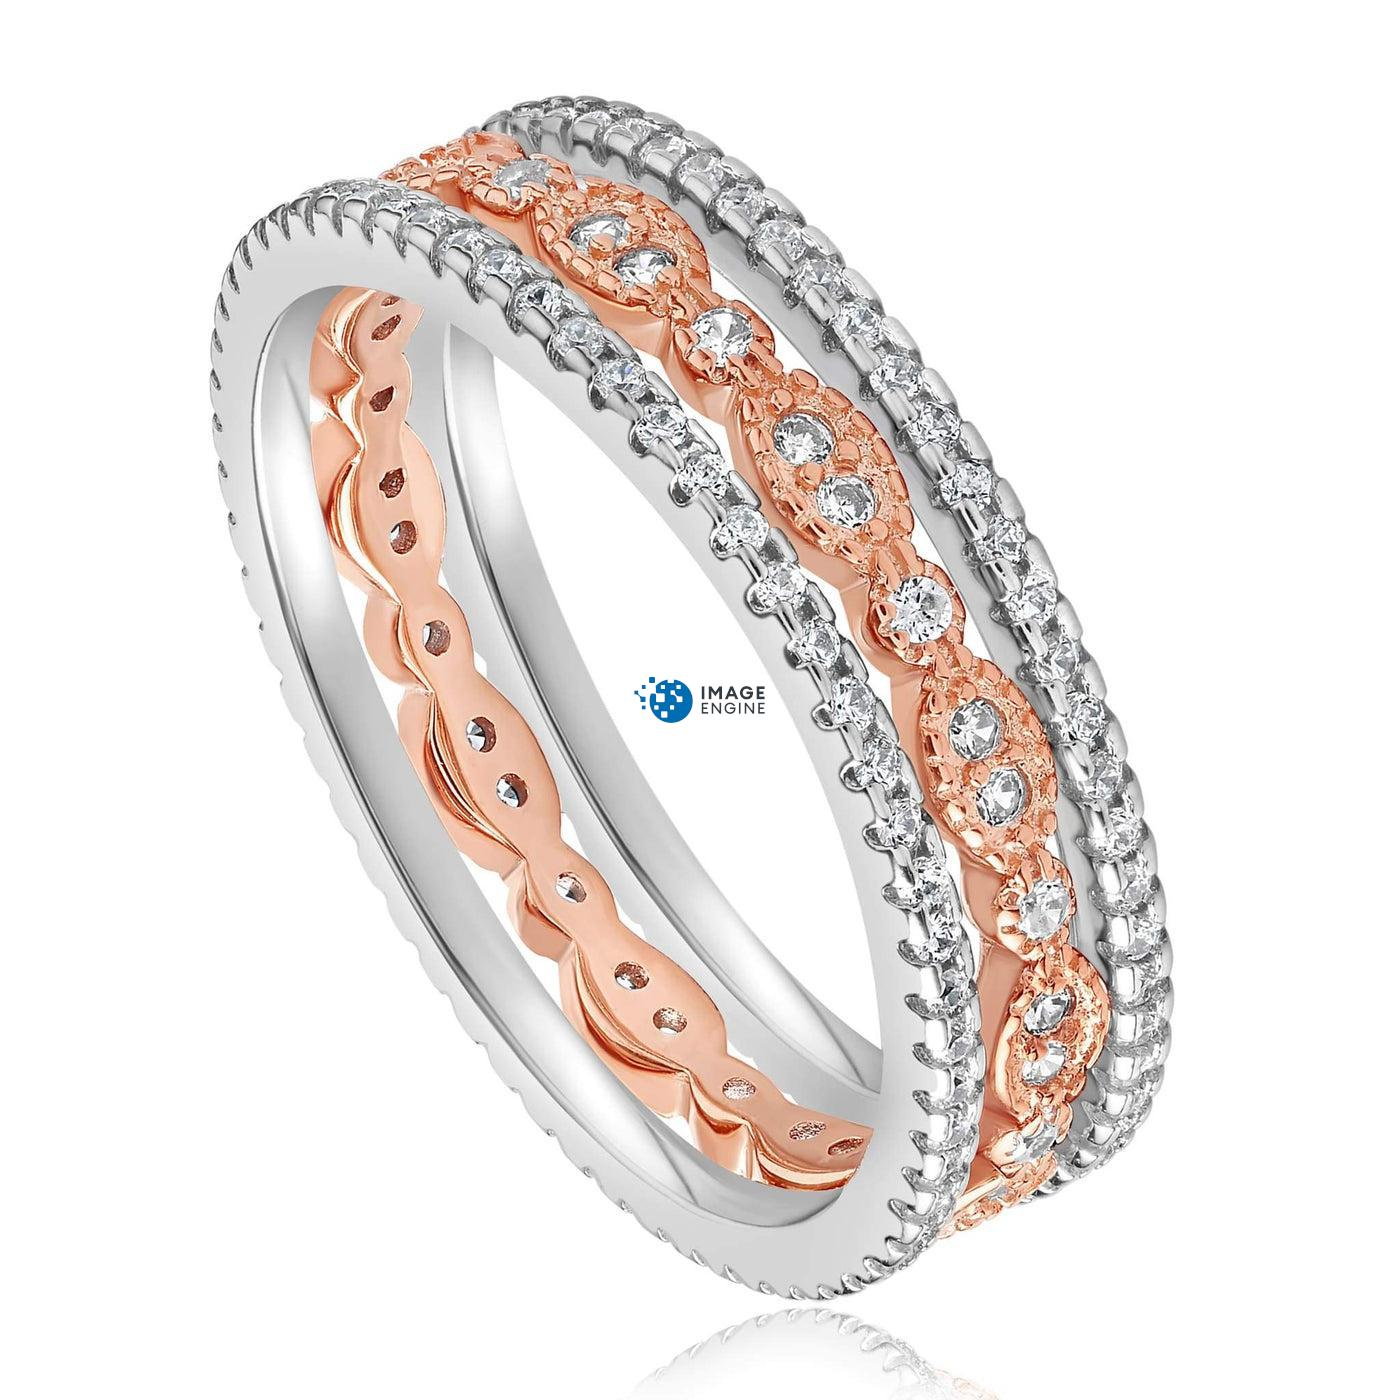 Juliana 3 Ring Set - Three Quarter View - 18K Rose Gold Vermeil